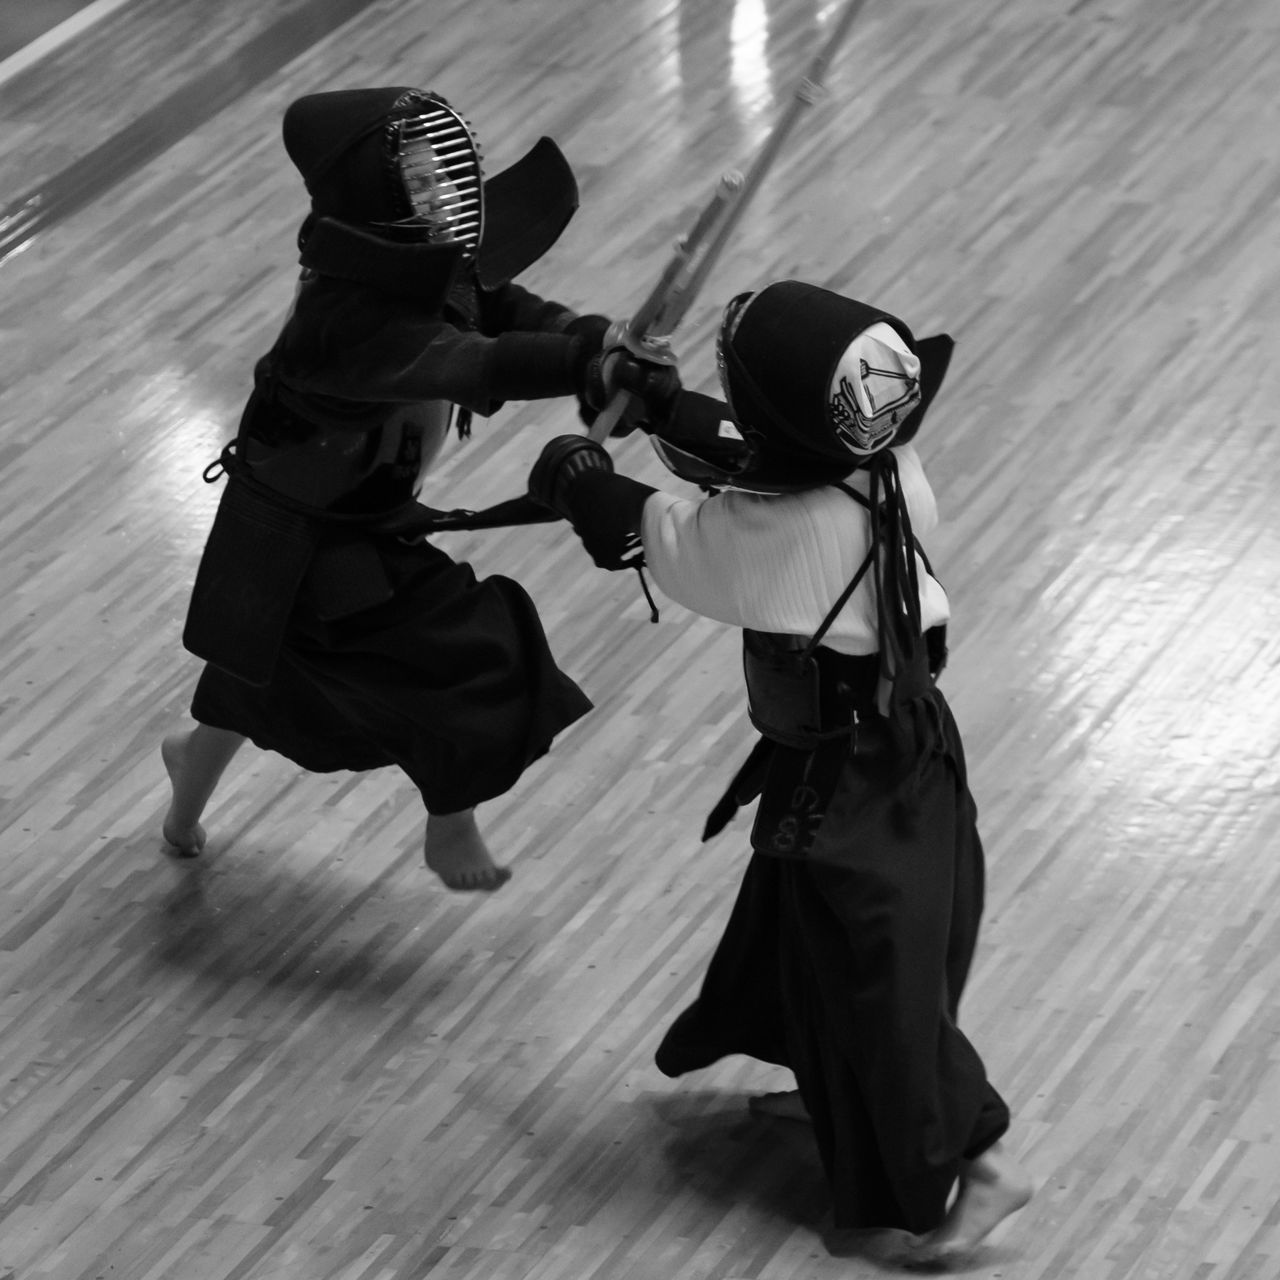 Black Black And White Blackandwhite Budo Japanese Culture Kendo Sport Sports Sword Swordman Ship Wood - Material X-PRO2 XF50-140mm The Portraitist - 2016 EyeEm Awards